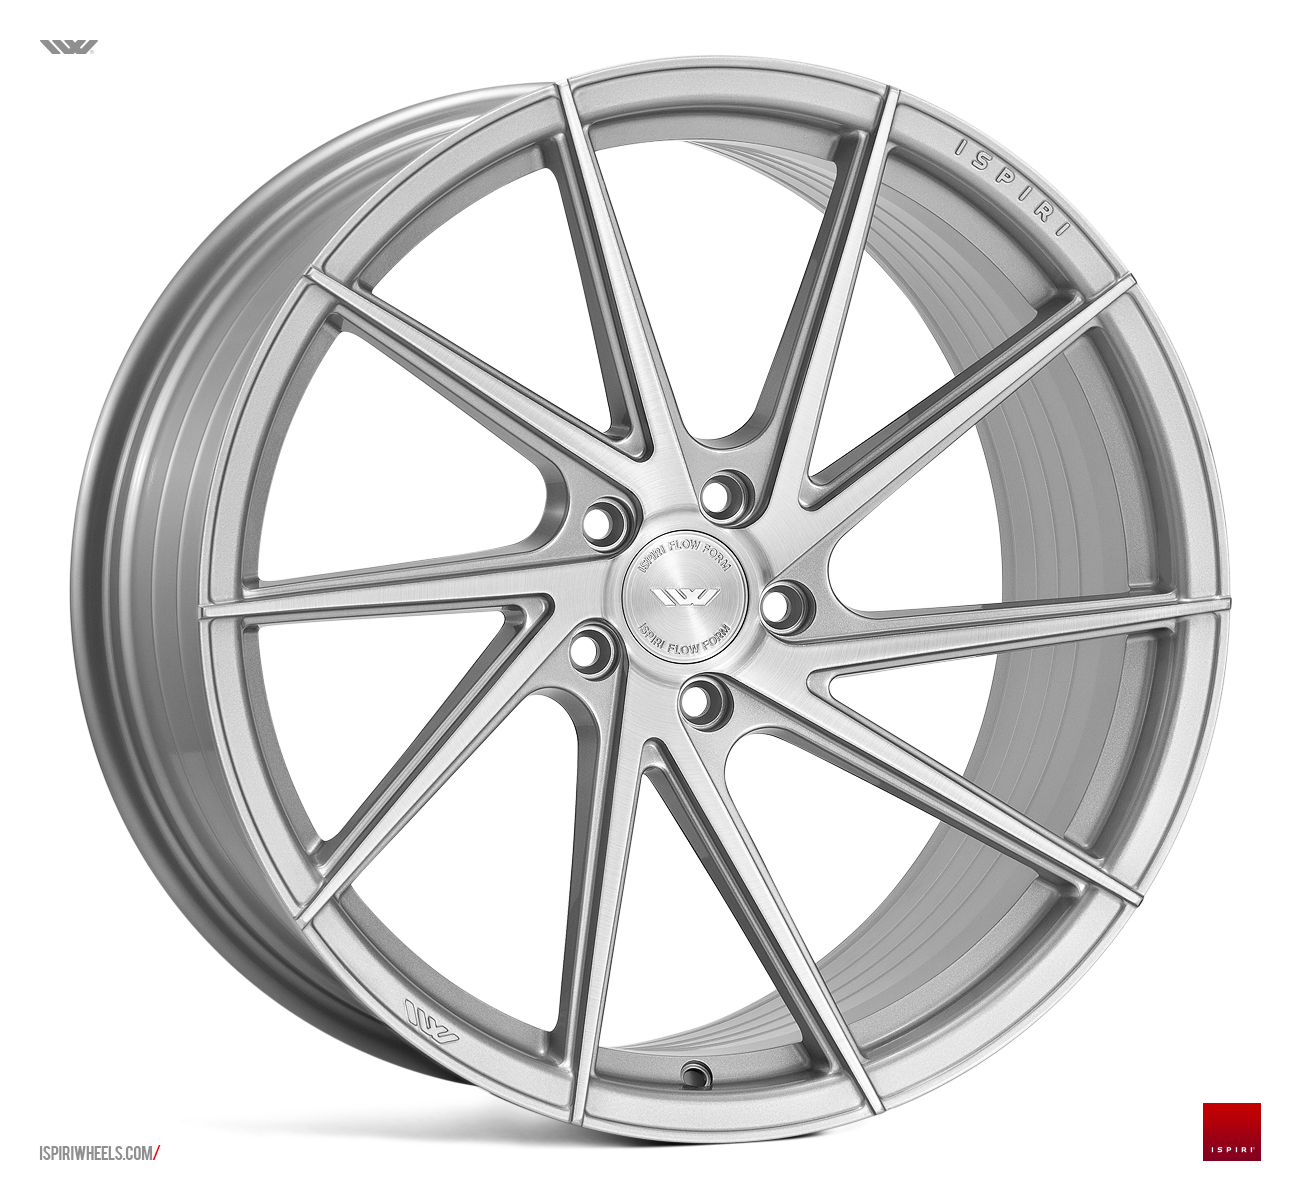 "NEW 20"" ISPIRI FFR1D MULTI-SPOKE DIRECTIONAL ALLOYS IN SILVER WITH BRUSHED POLISH FACE, DEEPER CONCAVE 10.5"" REARS 5x120"